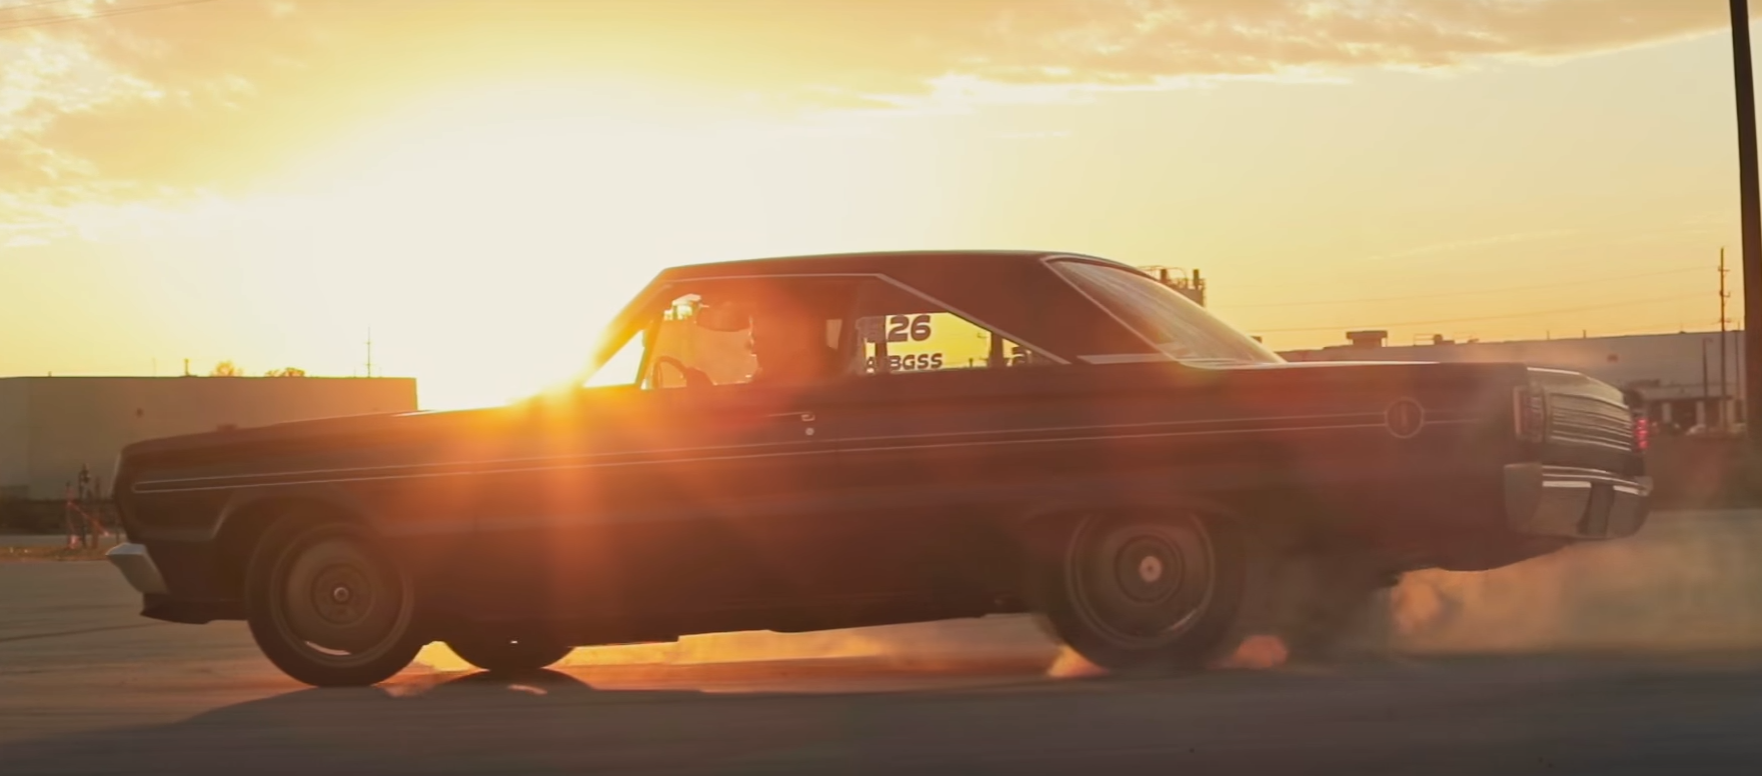 The Ultimate Belvedere - Ep. 3 - Meet Northern Bel, the 1966 Plymouth Belvedere conceived by David Meyer and brought to life by Troy Trepanier.